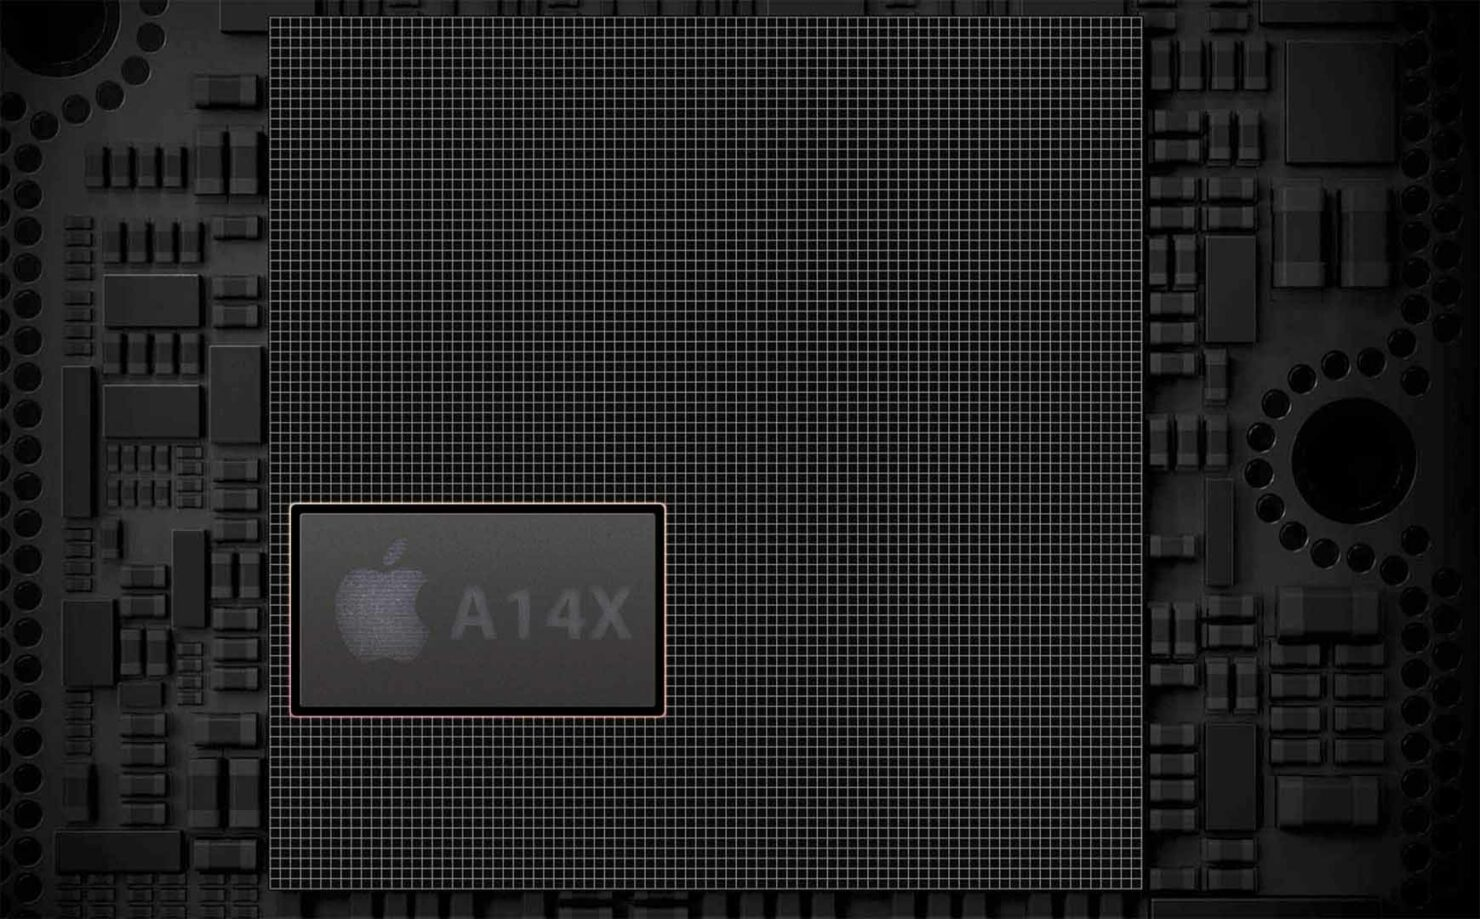 A14X Bionic Core Count, Clock Speeds, Performance Stats Leak out - Outperforms a Core i9 16-inch MacBook Pro